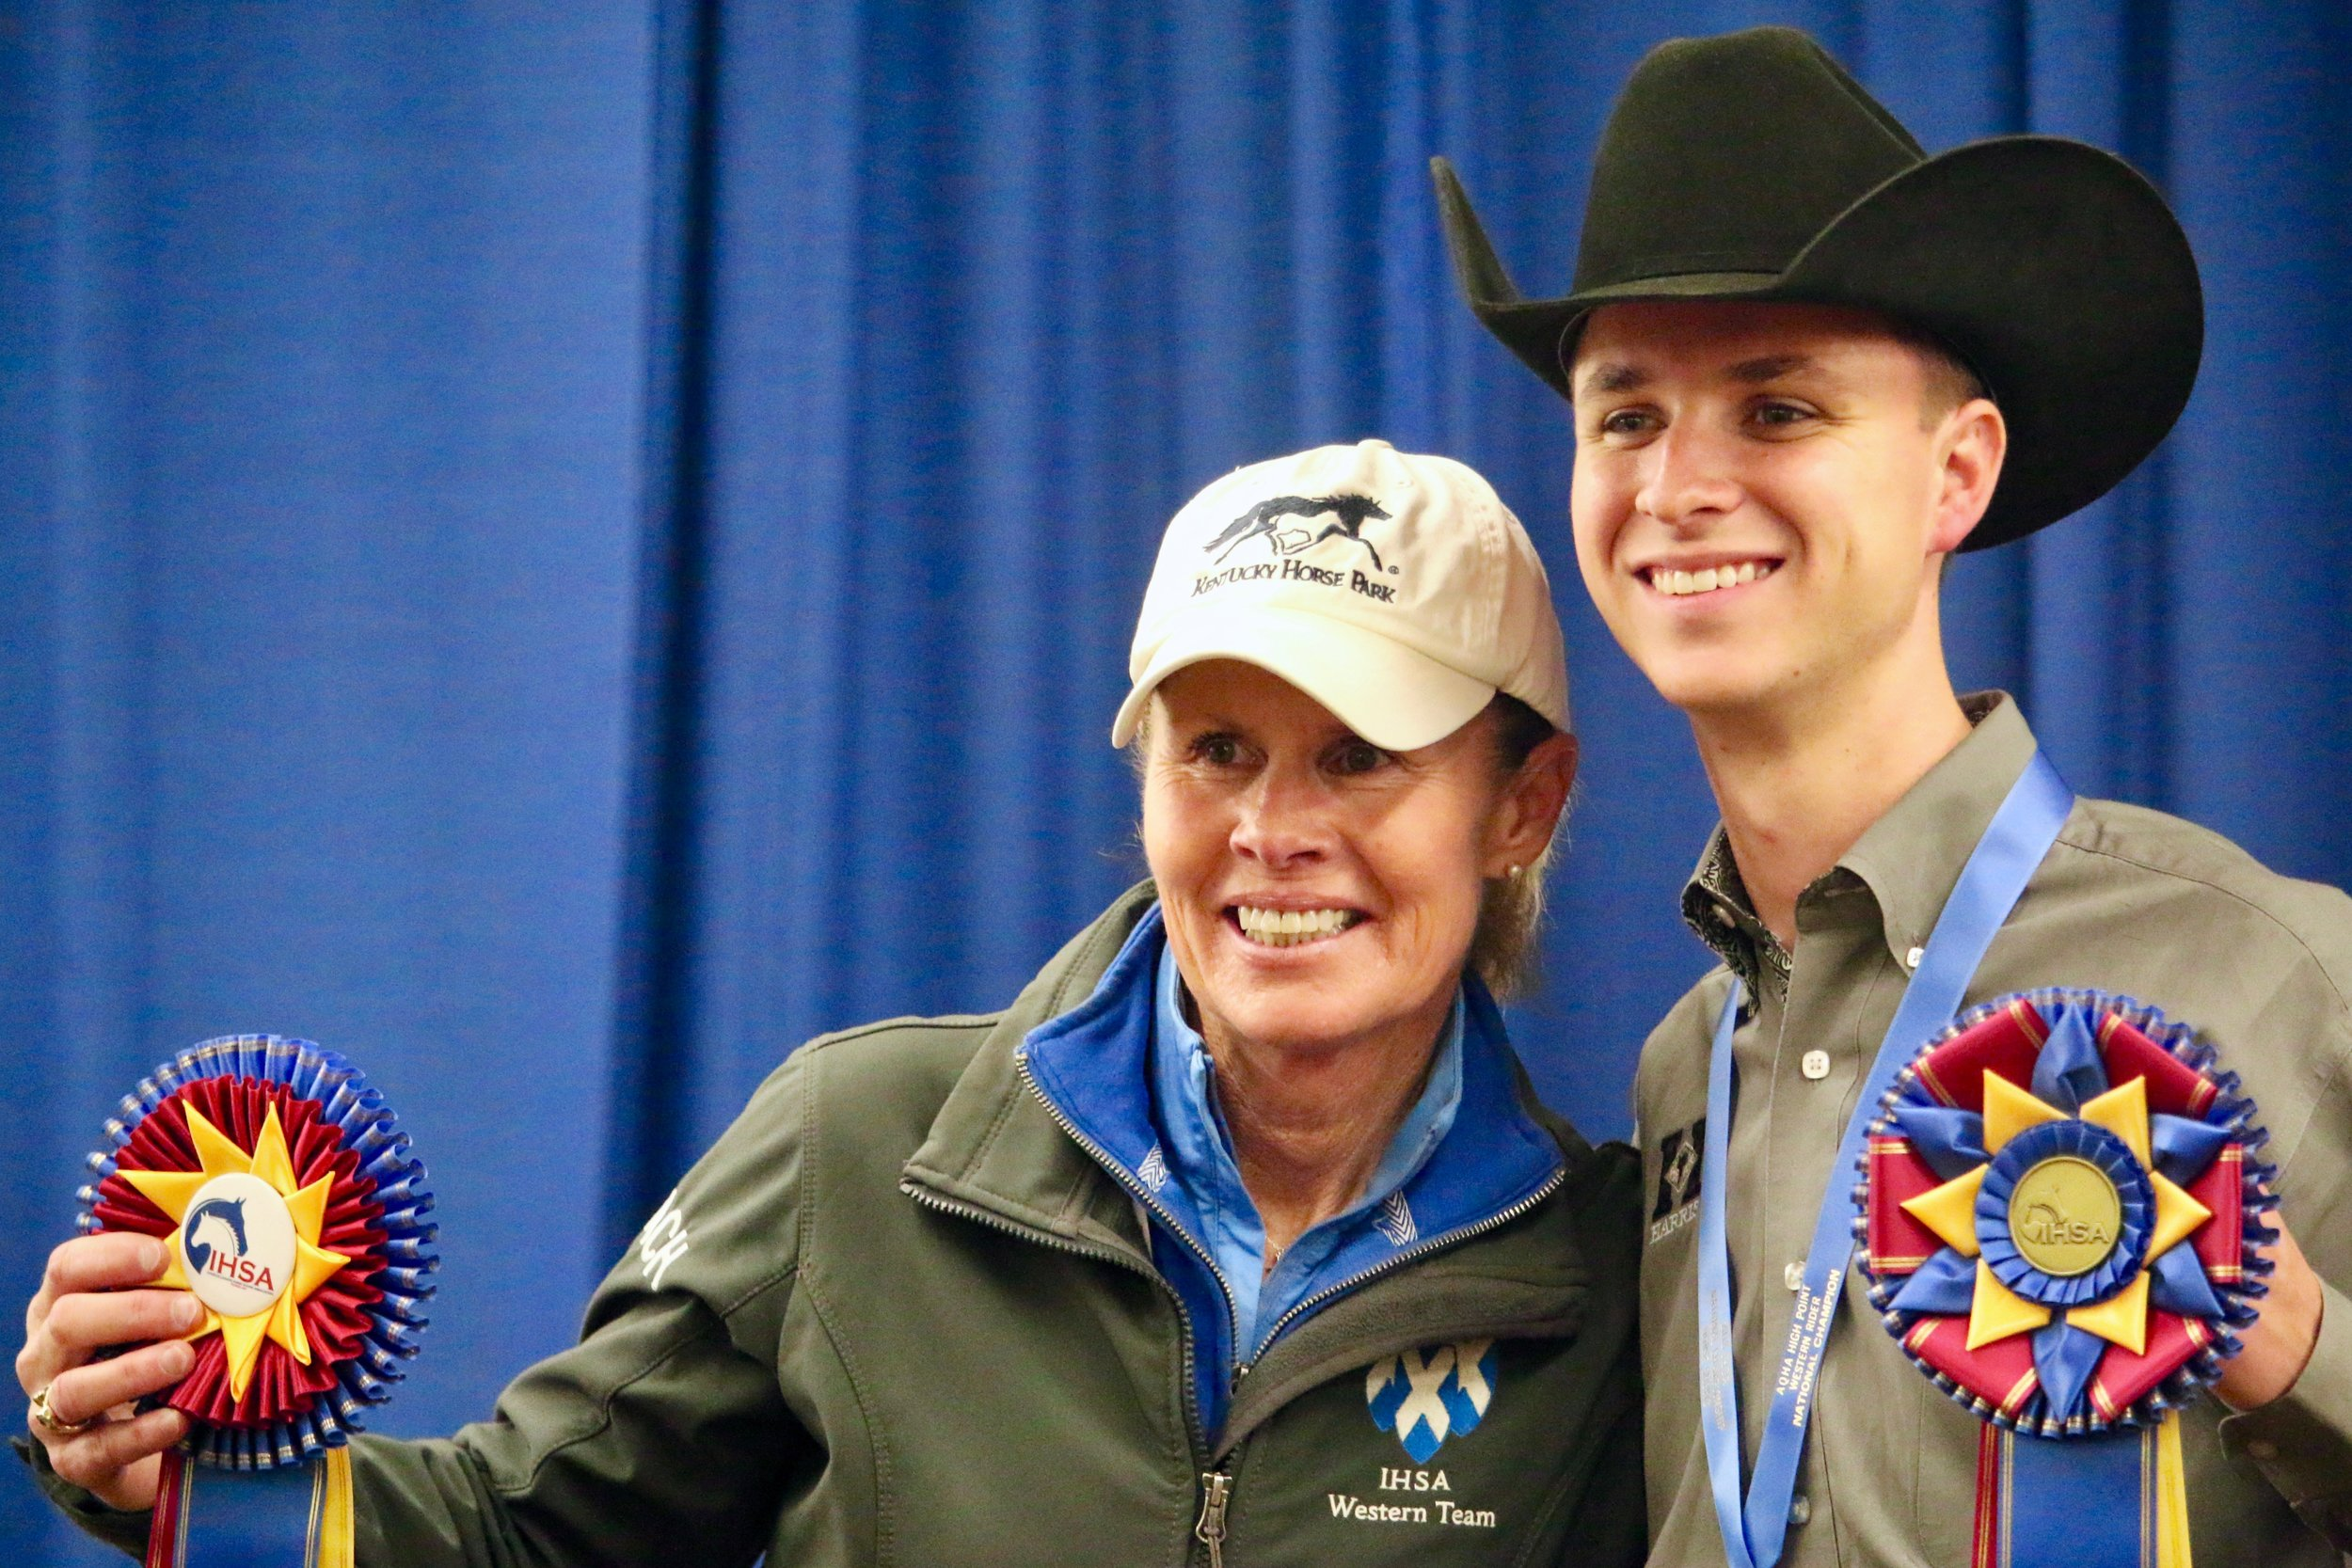 Carla Wennberg with her St. Andrews University student Connor Smith, 2018 AQHA High Point Western Rider at the IHSA National Championship Horse Show. Photo by EQ Media